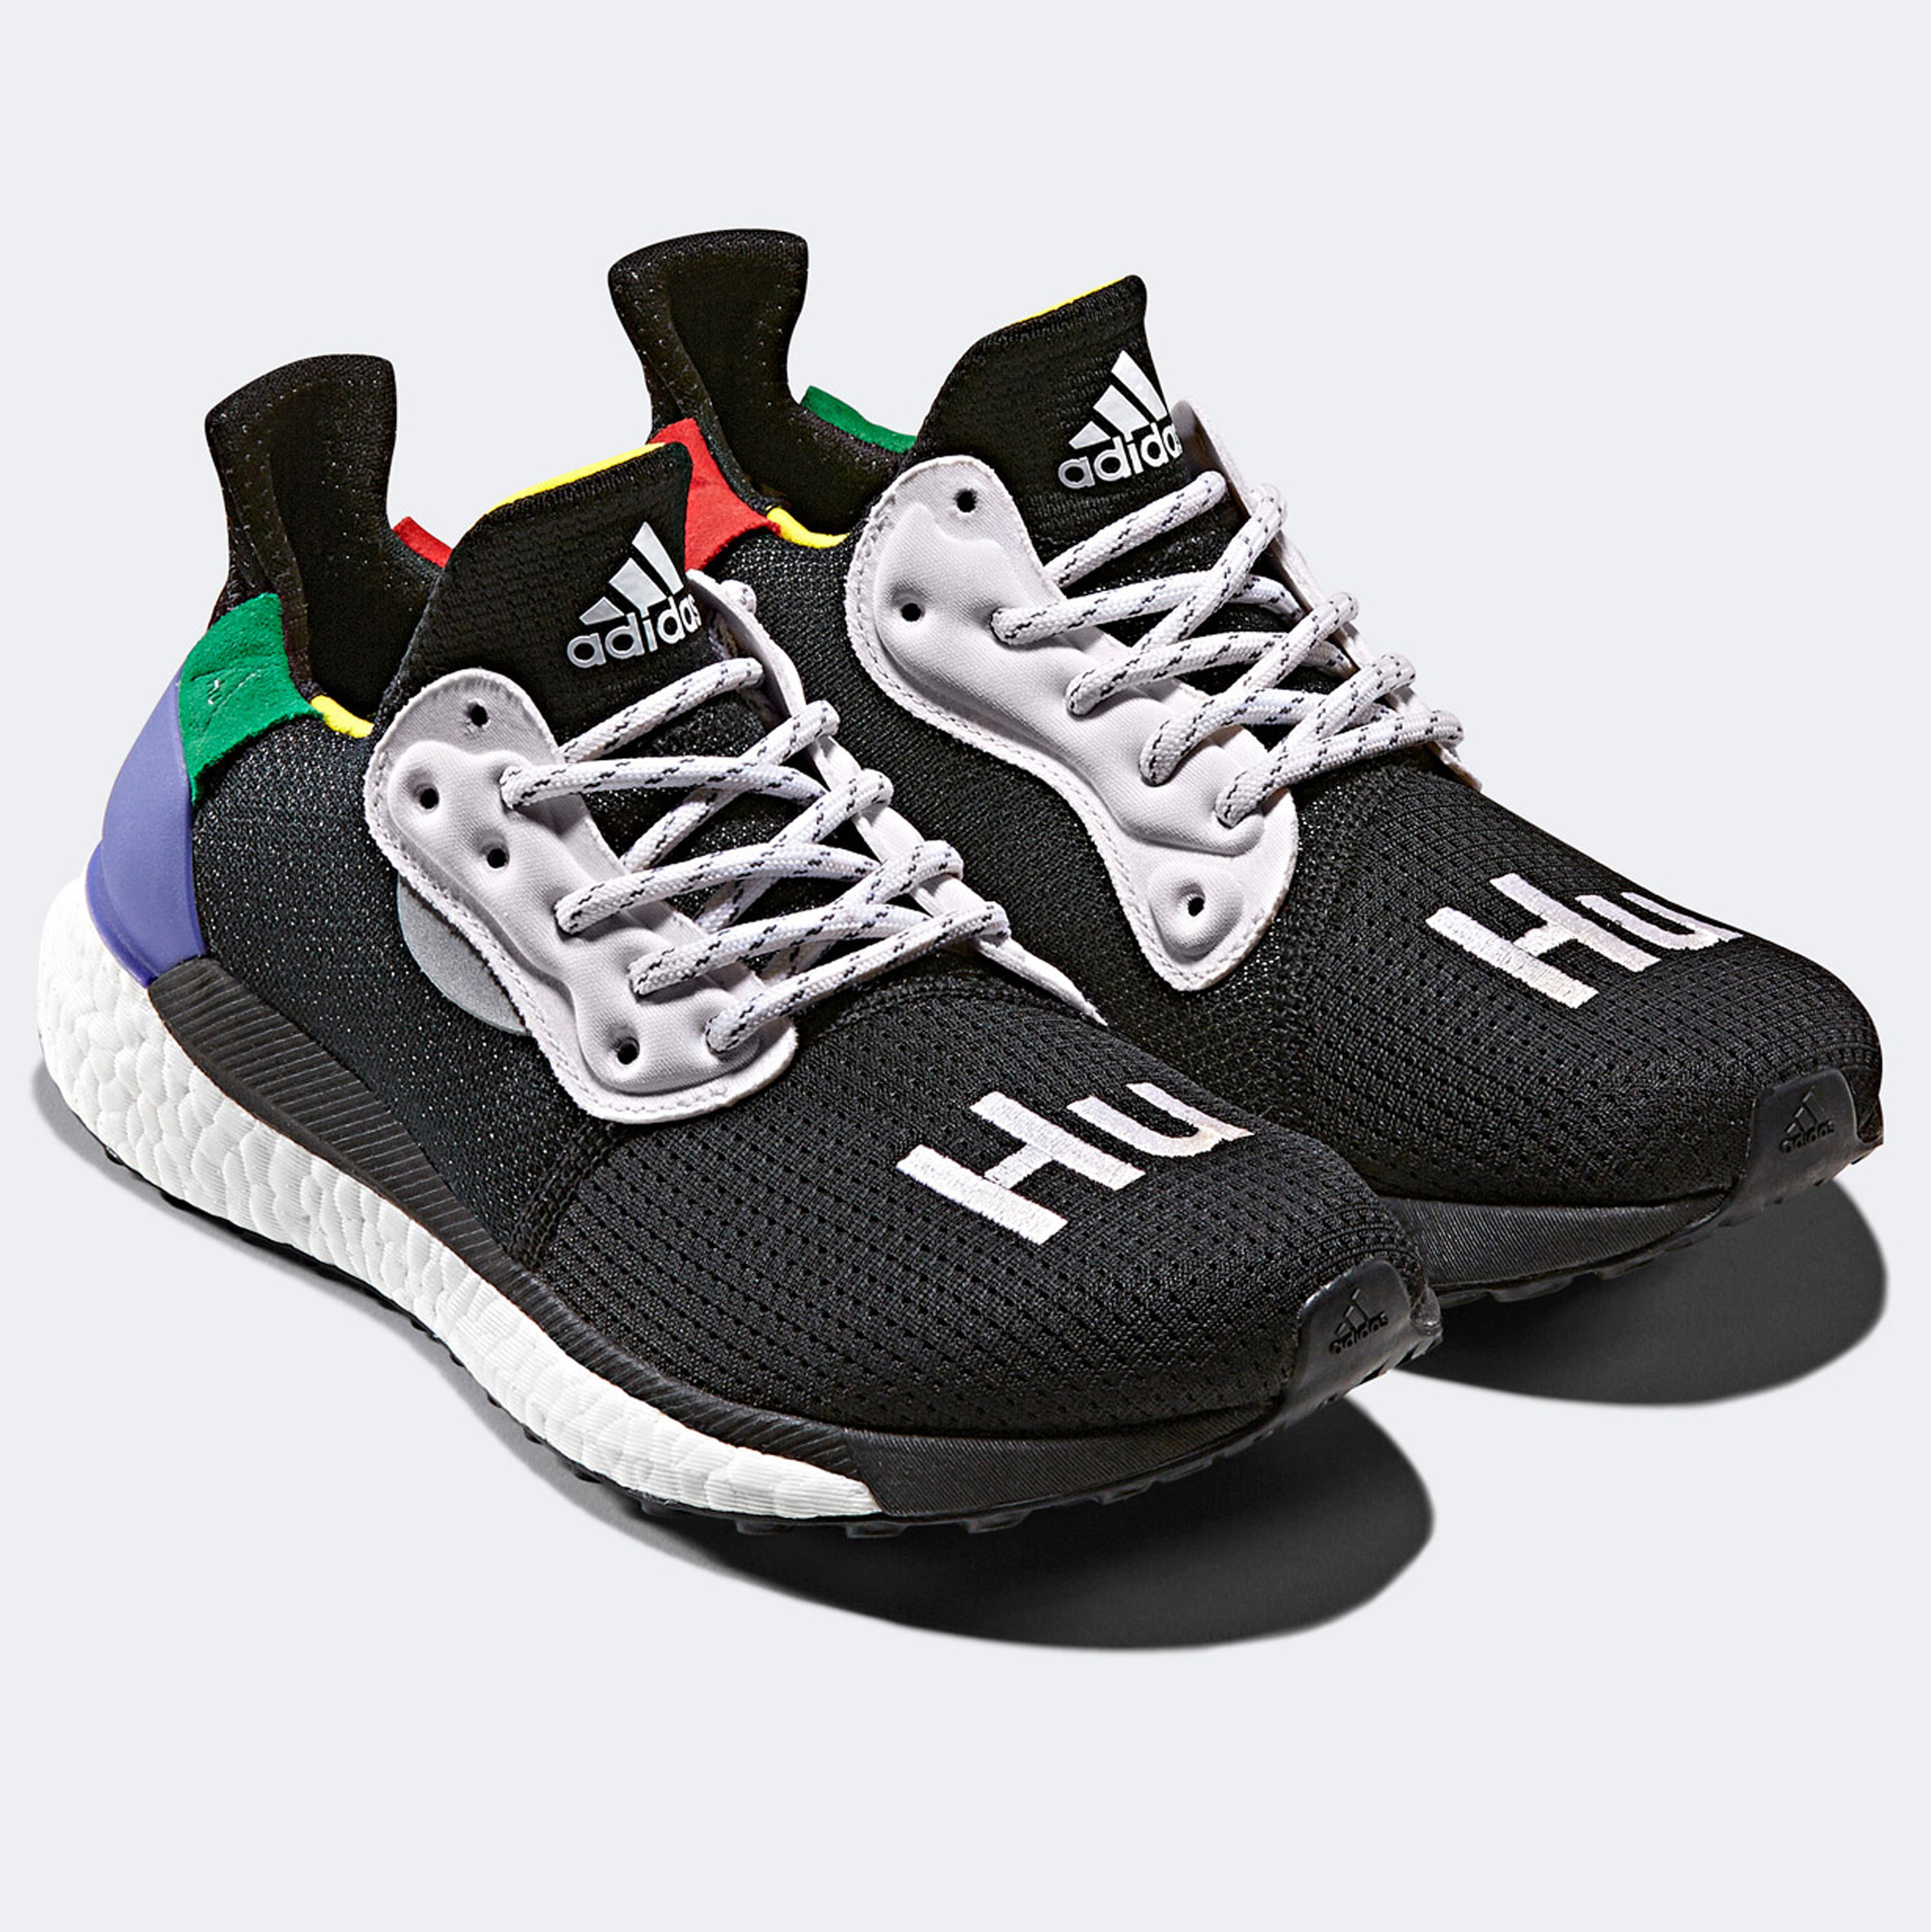 purchase cheap 79d8f 54b22 Pharrell Williams' Solar Hu adidas collection is based on ...